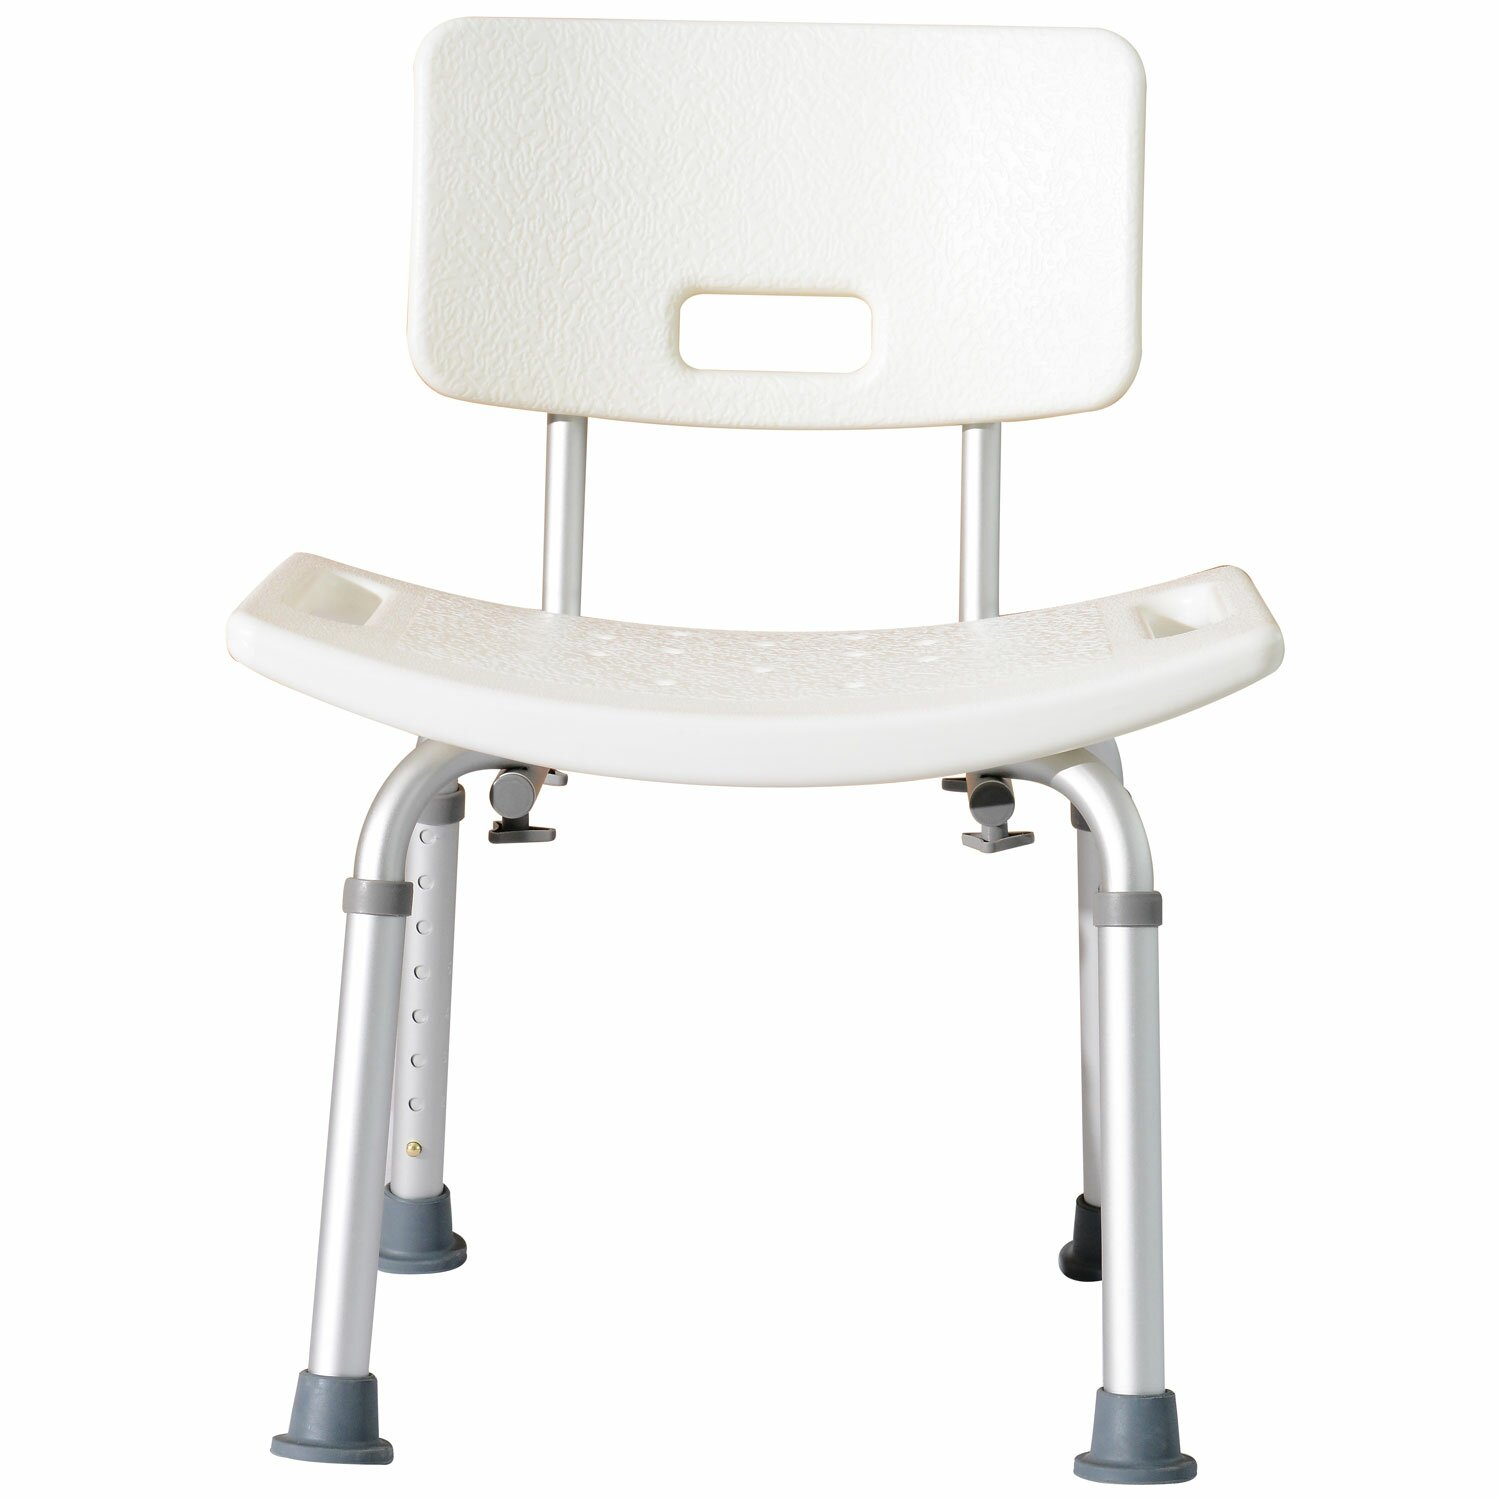 Homcom medical bath bench shower chair reviews wayfair Bath bench